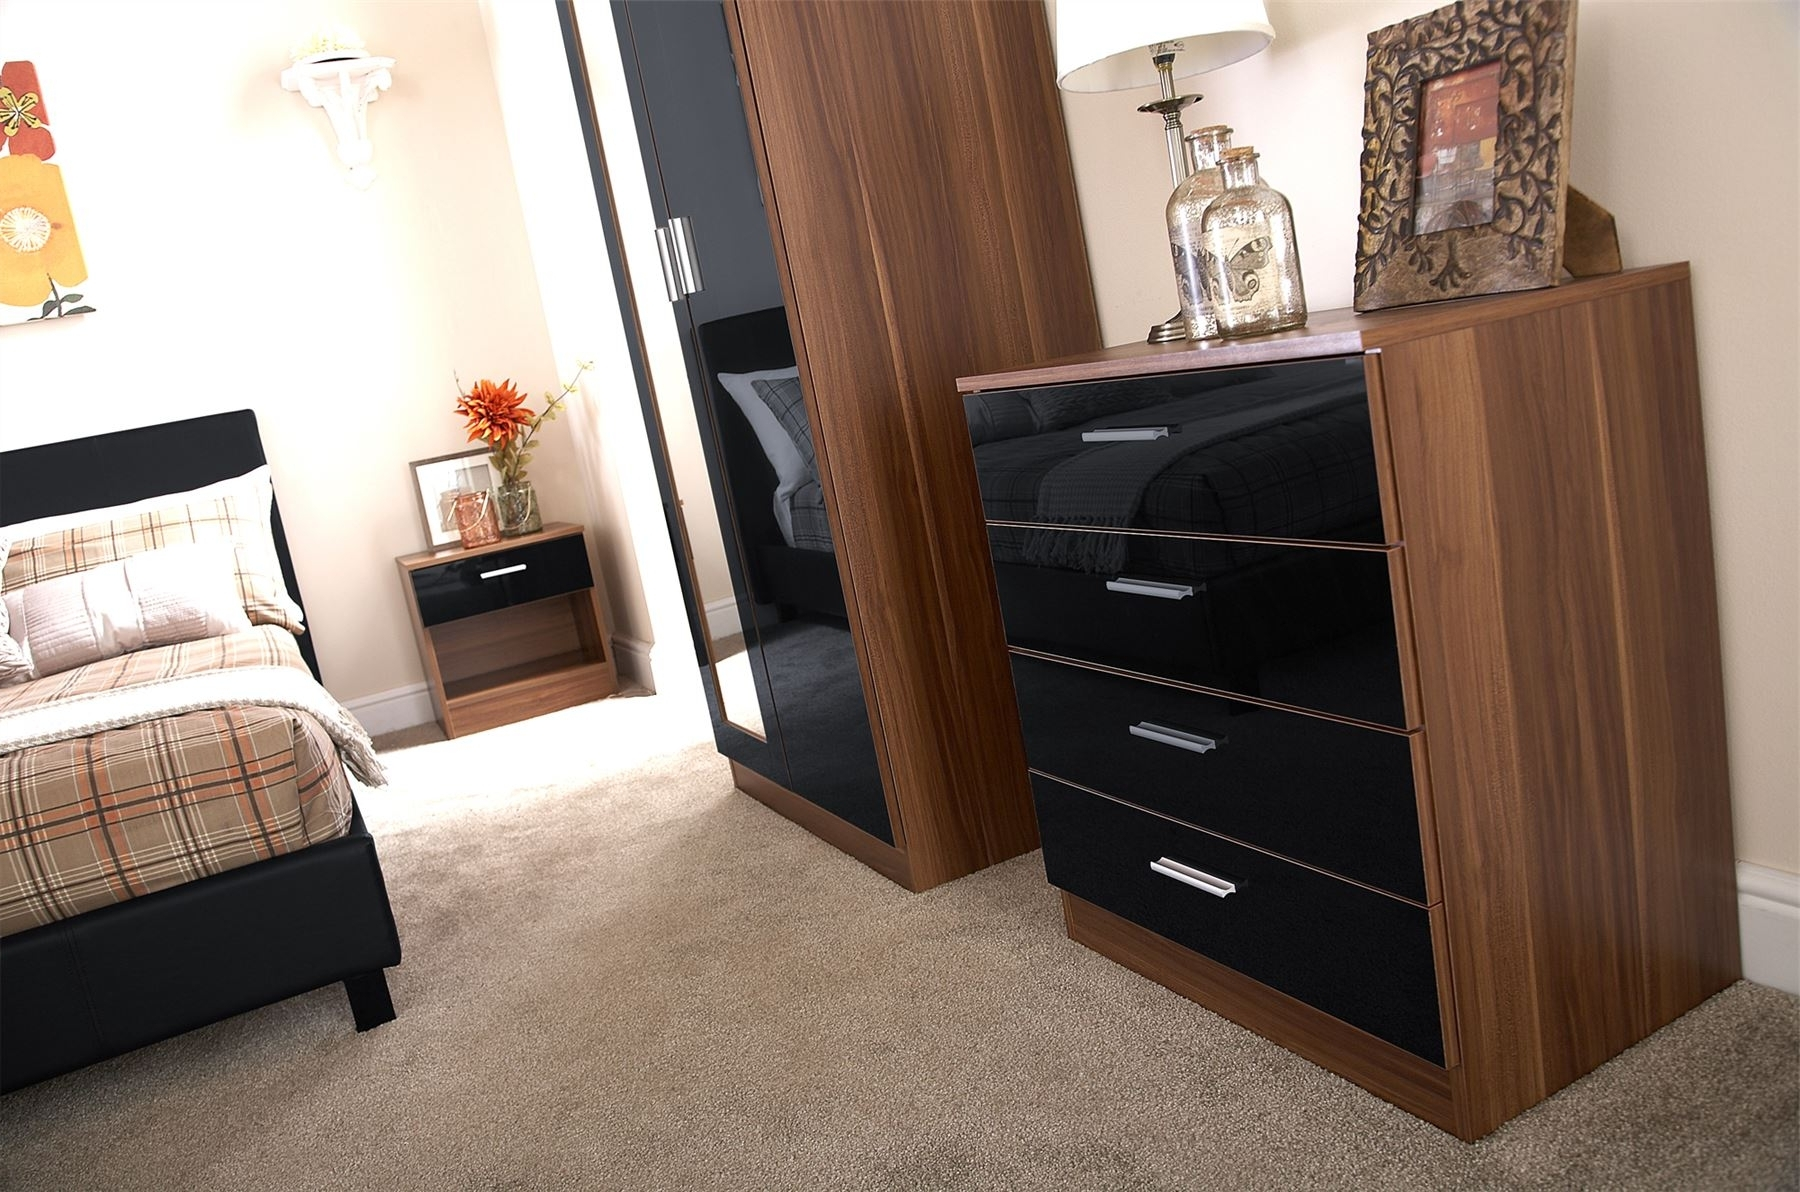 Bedroom Furniture 3 Piece Set Black Gloss & Walnut Wardrobe Intended For Current Wardrobes And Chest Of Drawers Combined (View 1 of 15)